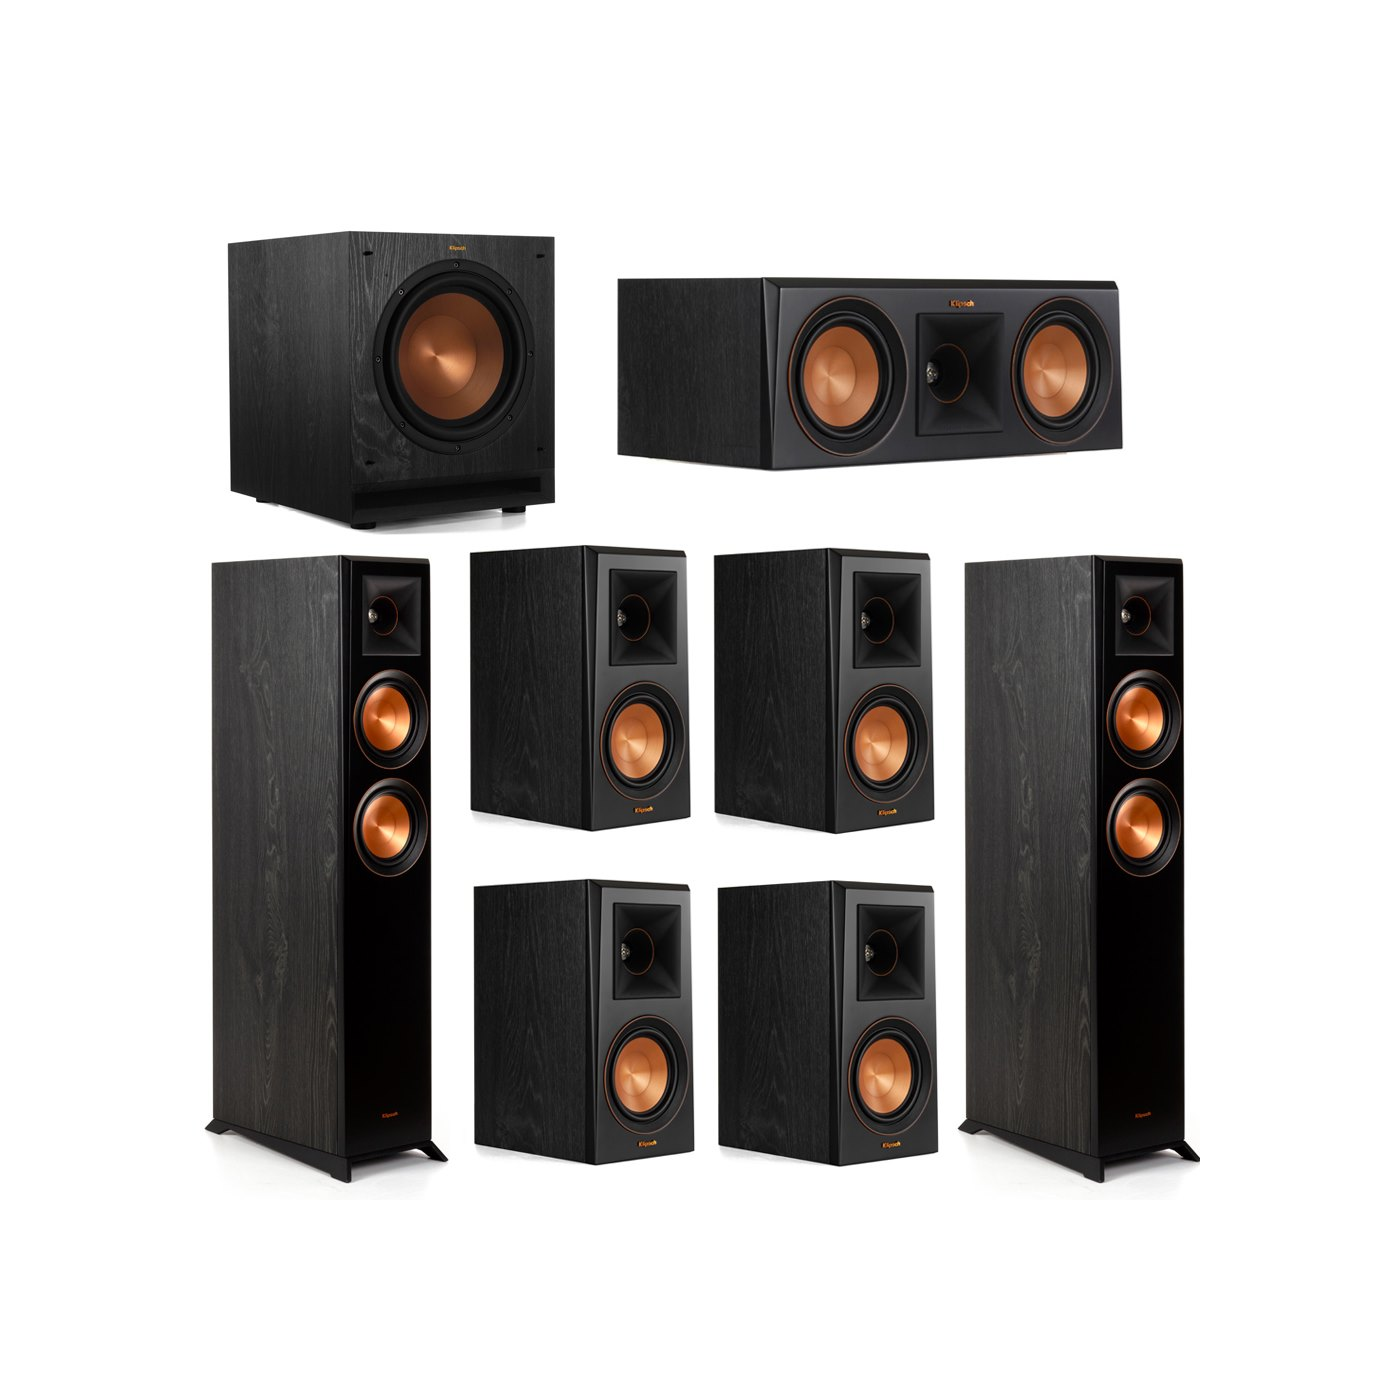 Klipsch 7.1 System with 2 RP-5000F Floorstanding Speakers, 1 Klipsch RP-500C Center Speaker, 4 Klipsch RP-500M Surround Speakers, 1 Klipsch SPL-100 Subwoofer